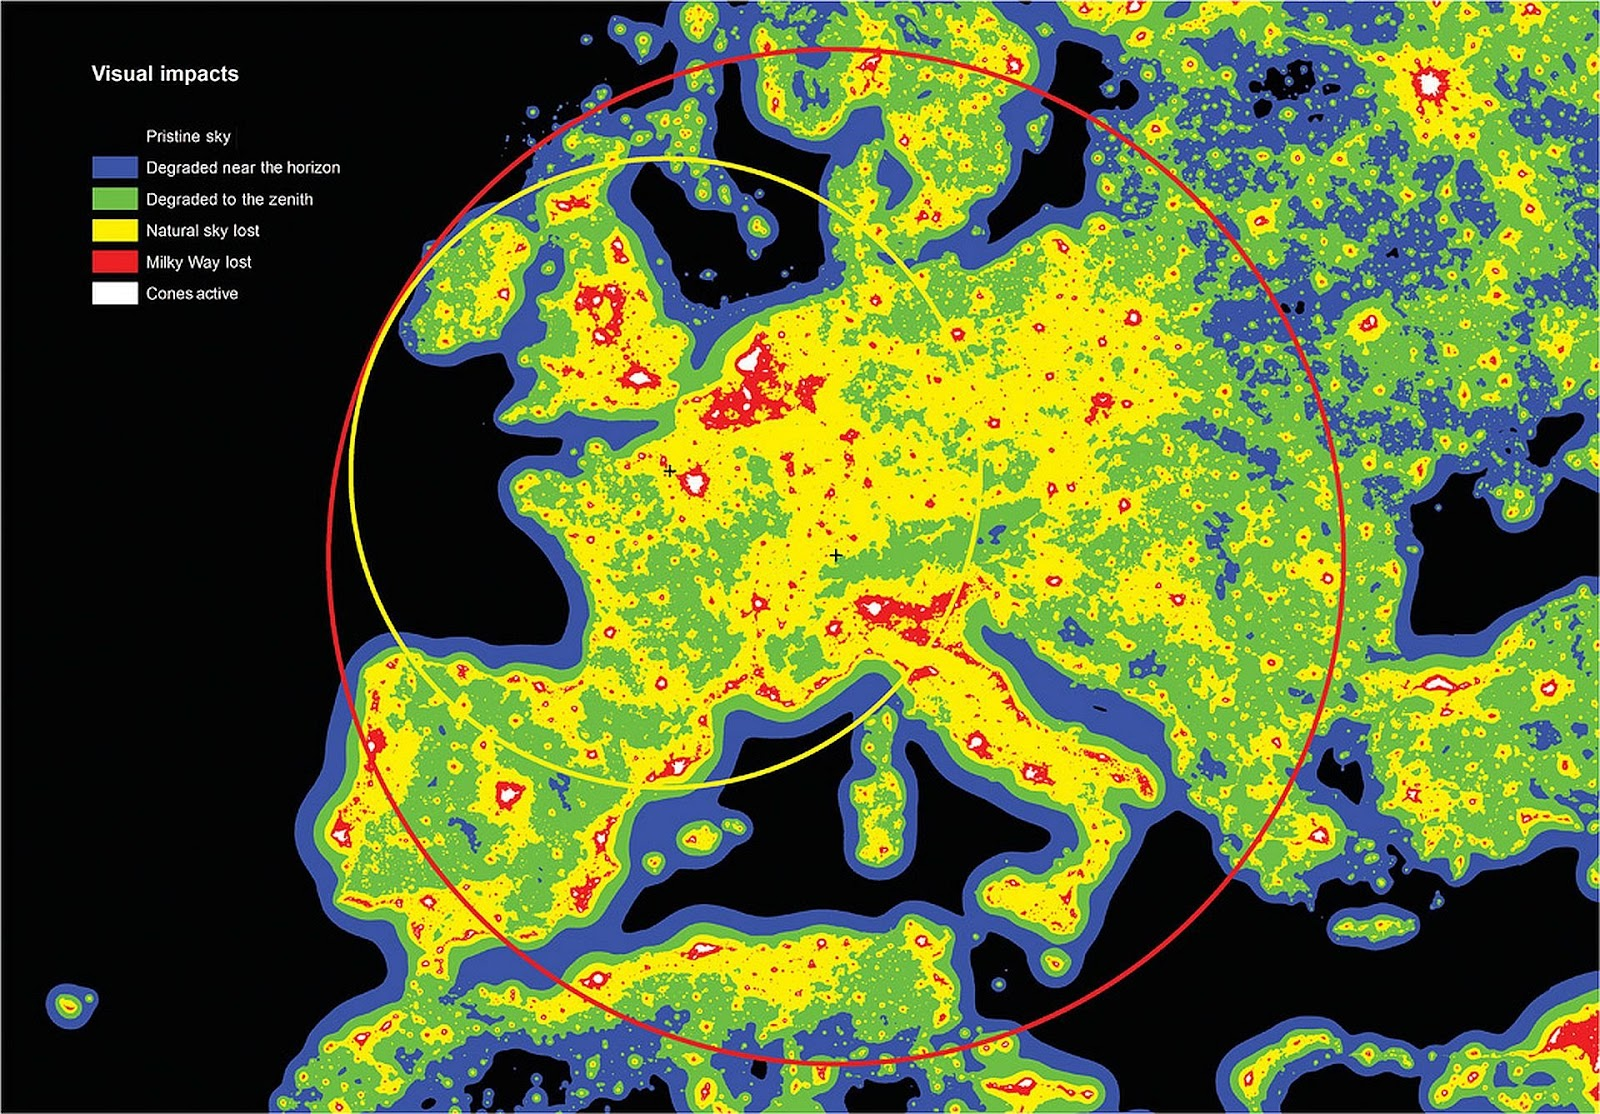 Visual impacts of artificial sky brightness in Europe